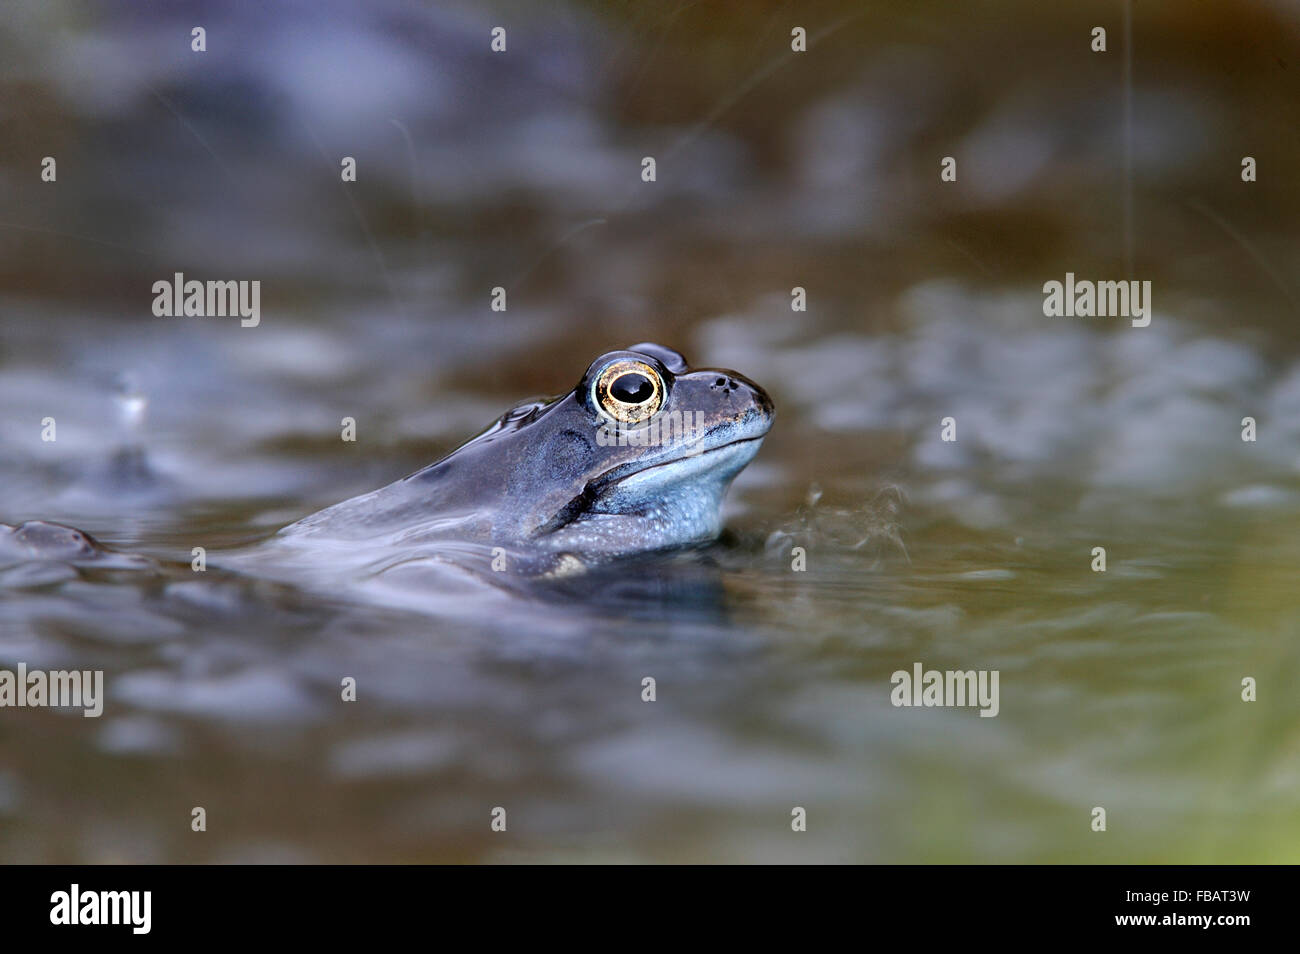 Adult common frog (Rana temporaria) in garden pond in rain shower, during April 2013, Bentley, Suffolk - Stock Image